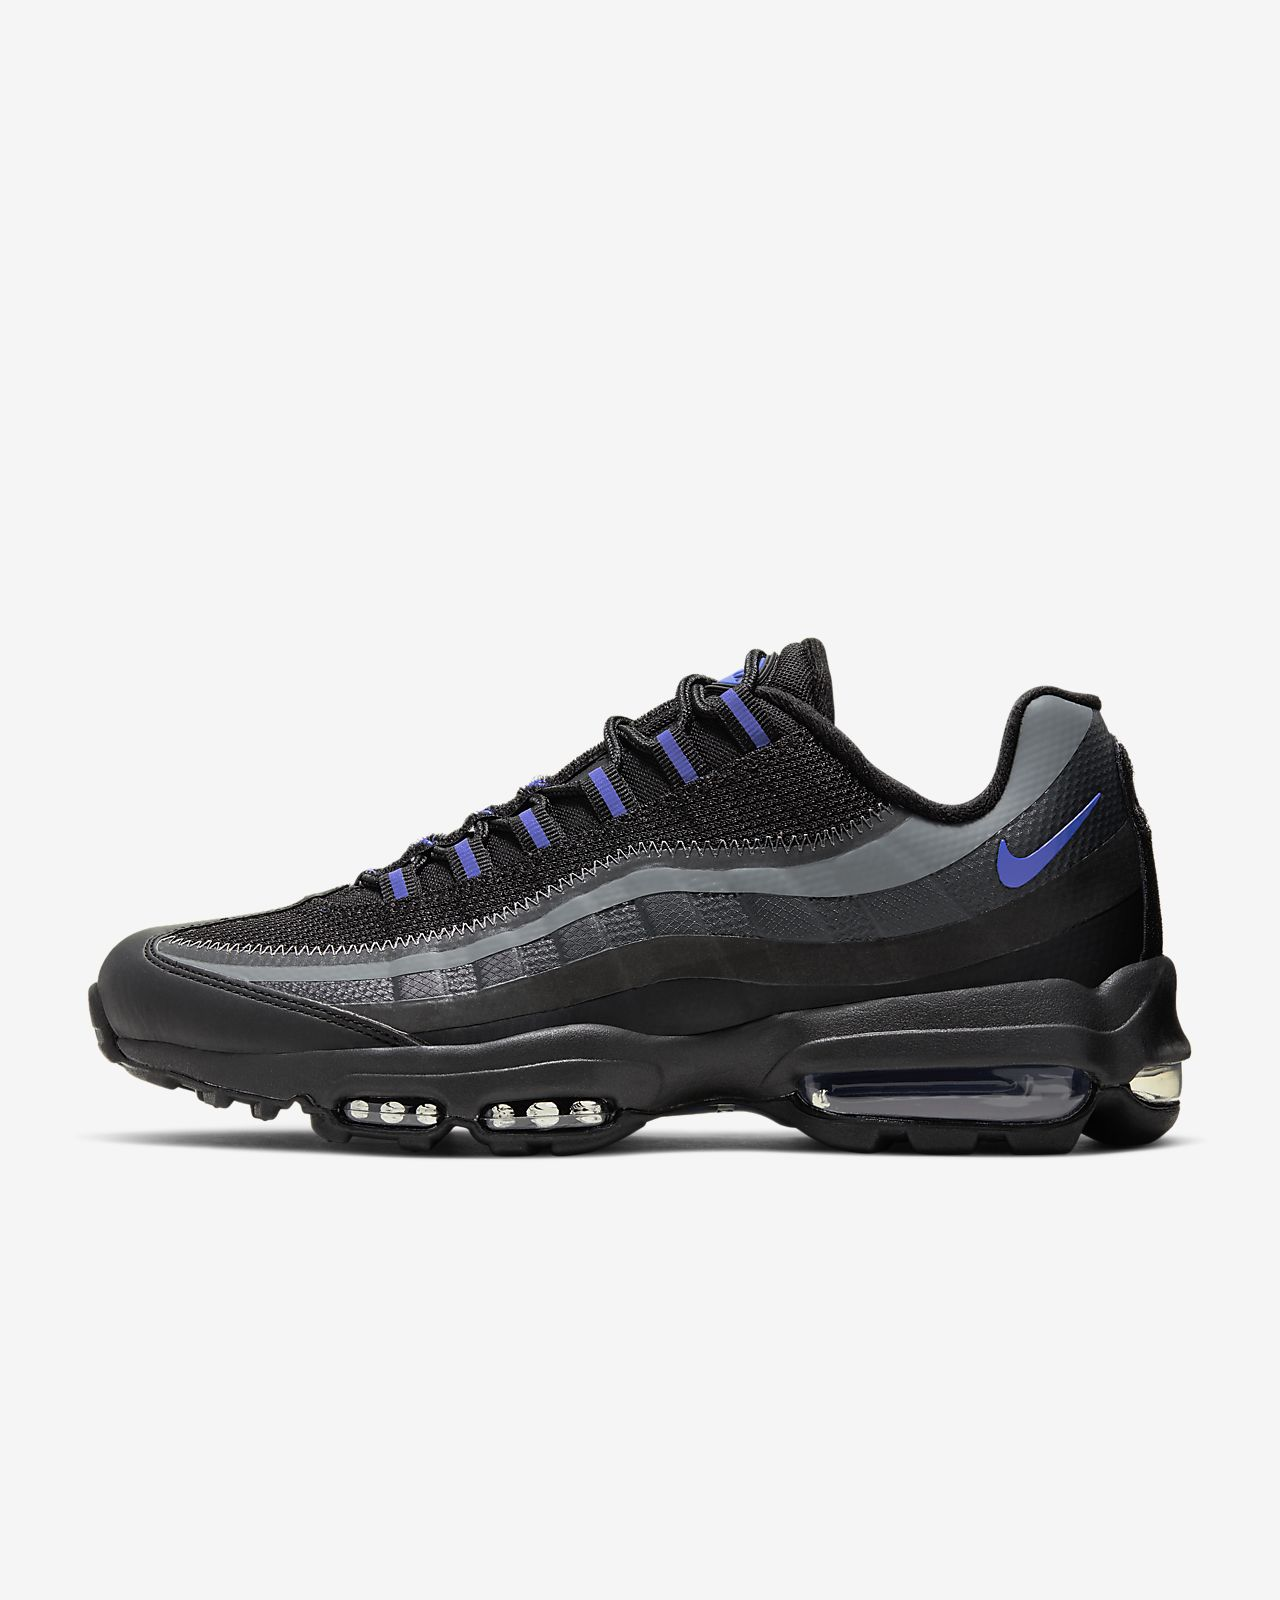 NIKE AIR MAX 95 (TRIPLE BLACK) Sneaker Freaker | Buty